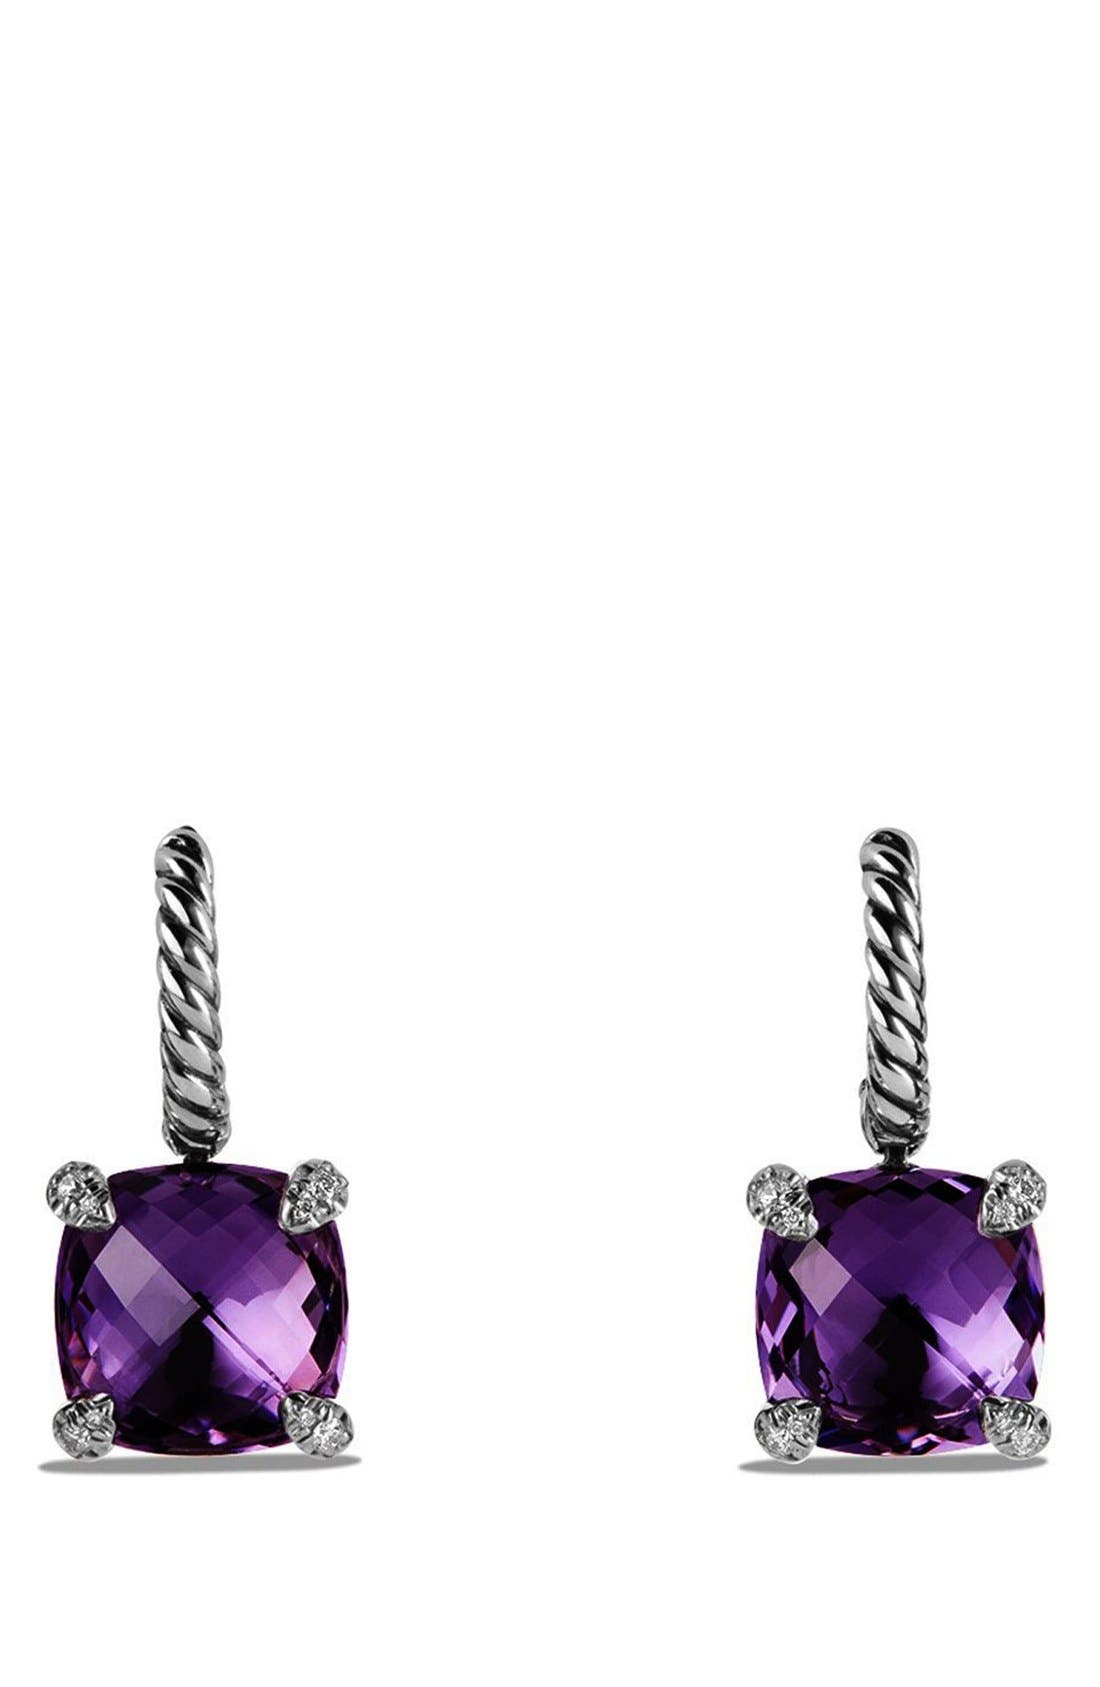 David Yurman 'Châtelaine' Drop Earrings with Semiprecious Stones and Diamonds